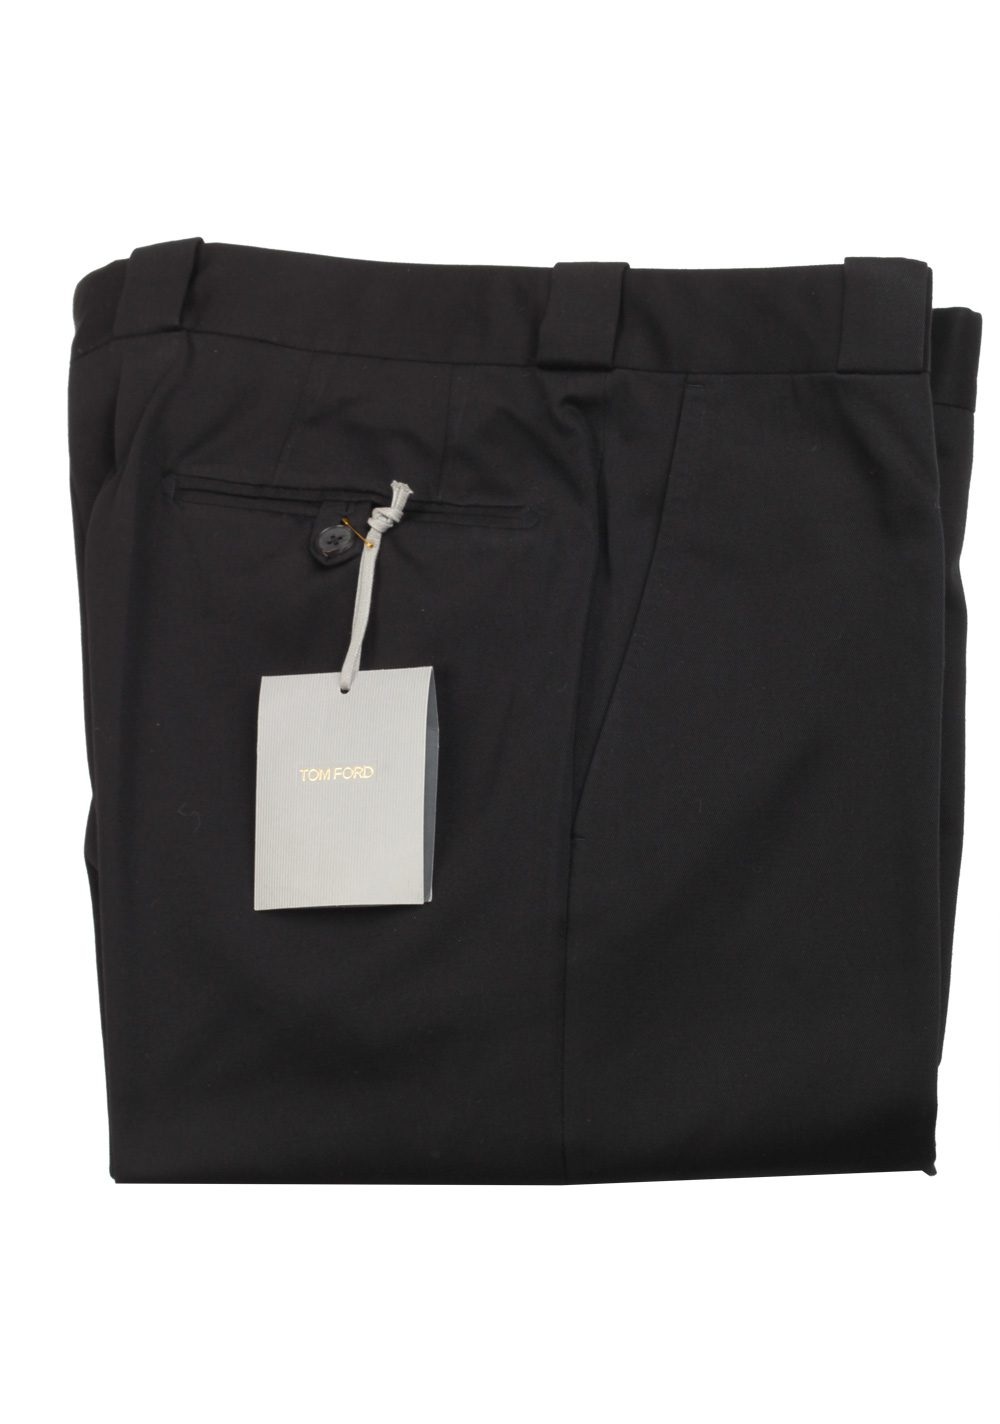 TOM FORD Black Cotton Trousers Size 52 / 36 U.S. | Costume Limité